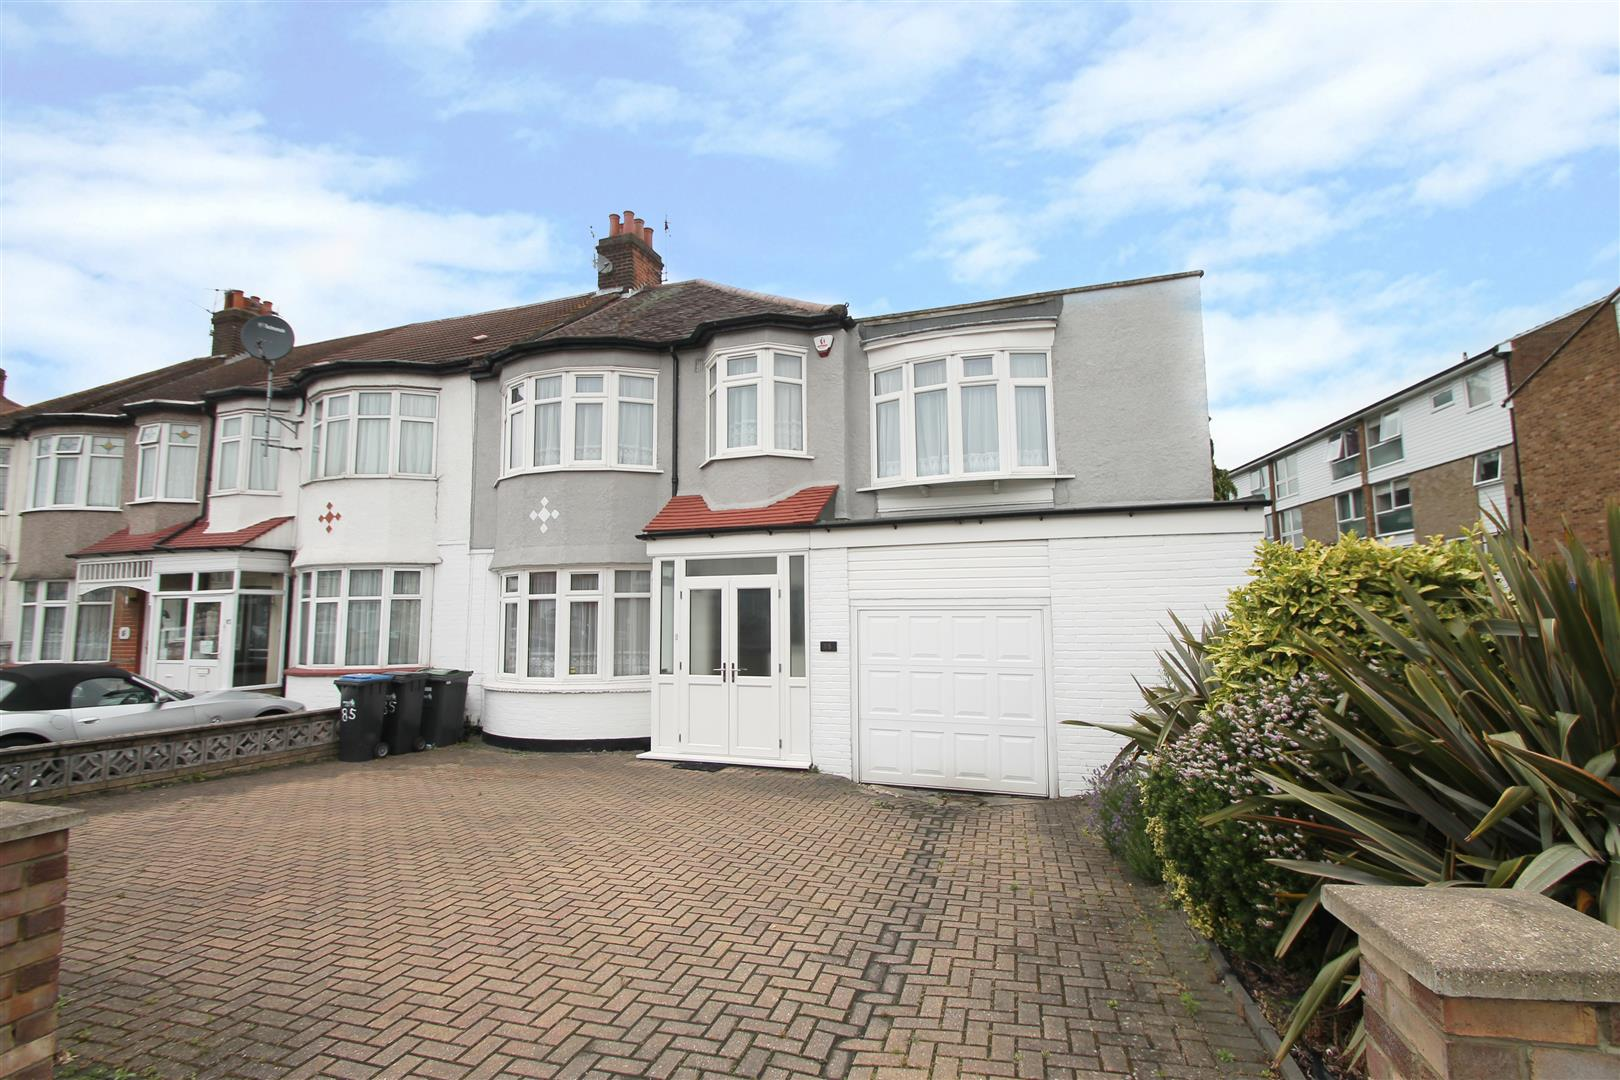 4 Bedrooms House for sale in Hedge Lane, London